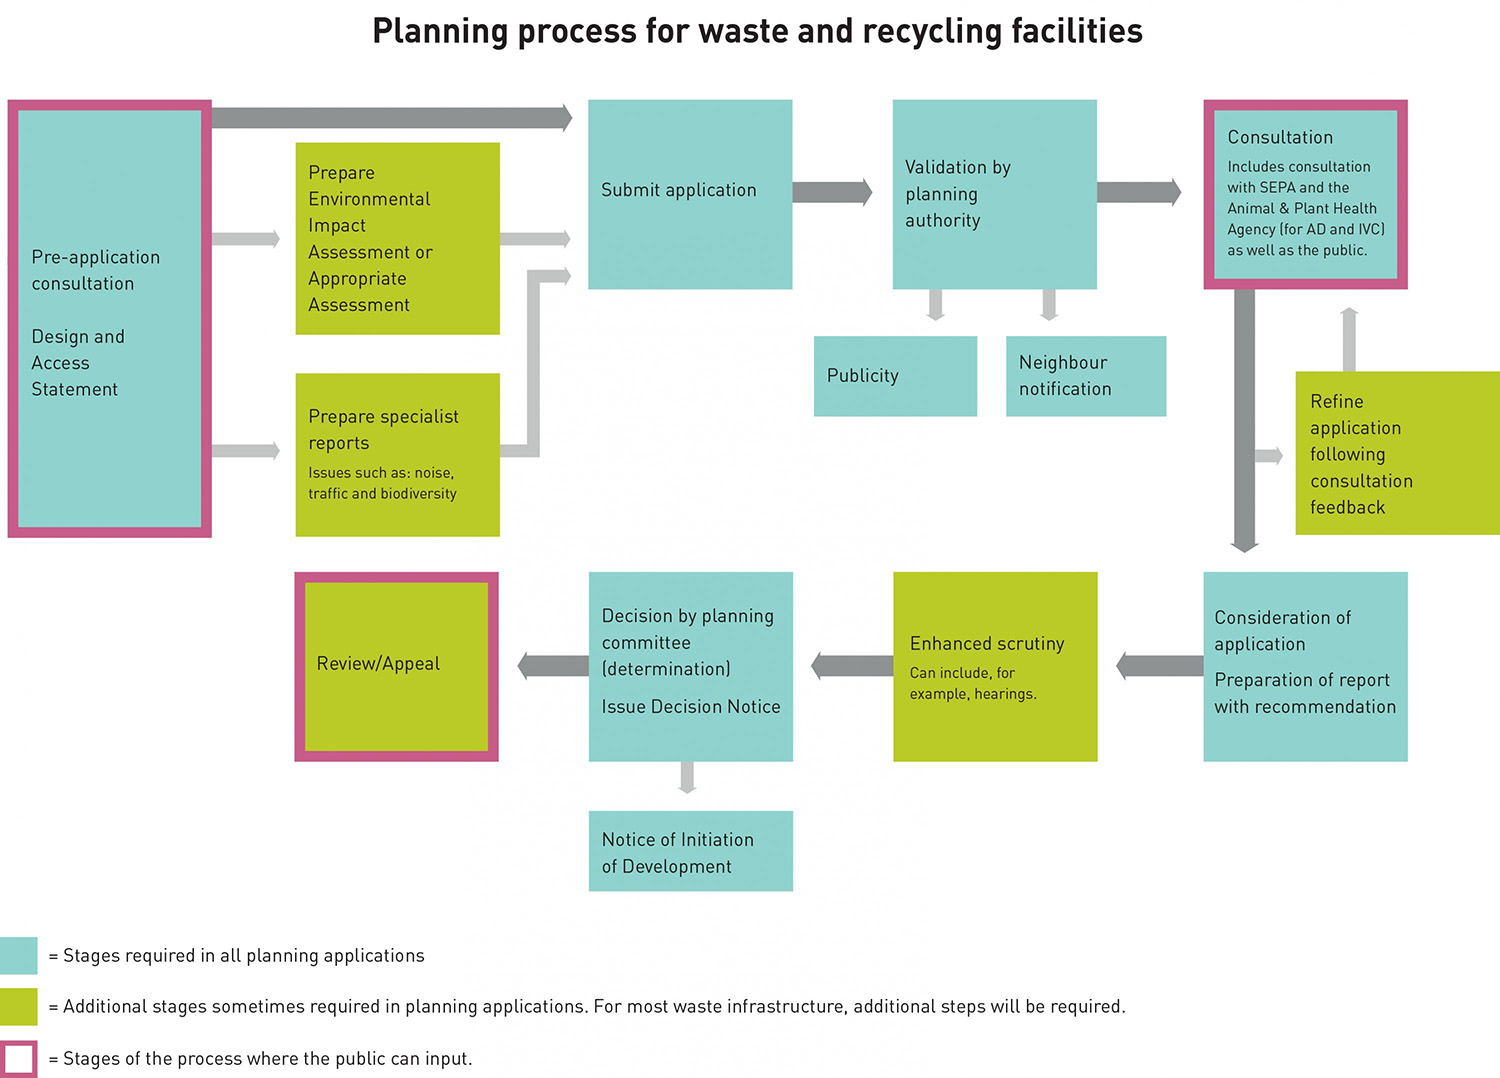 rfp process diagram 2009 dodge journey wiring trailer hitch for creating waste and recycling facilities zero